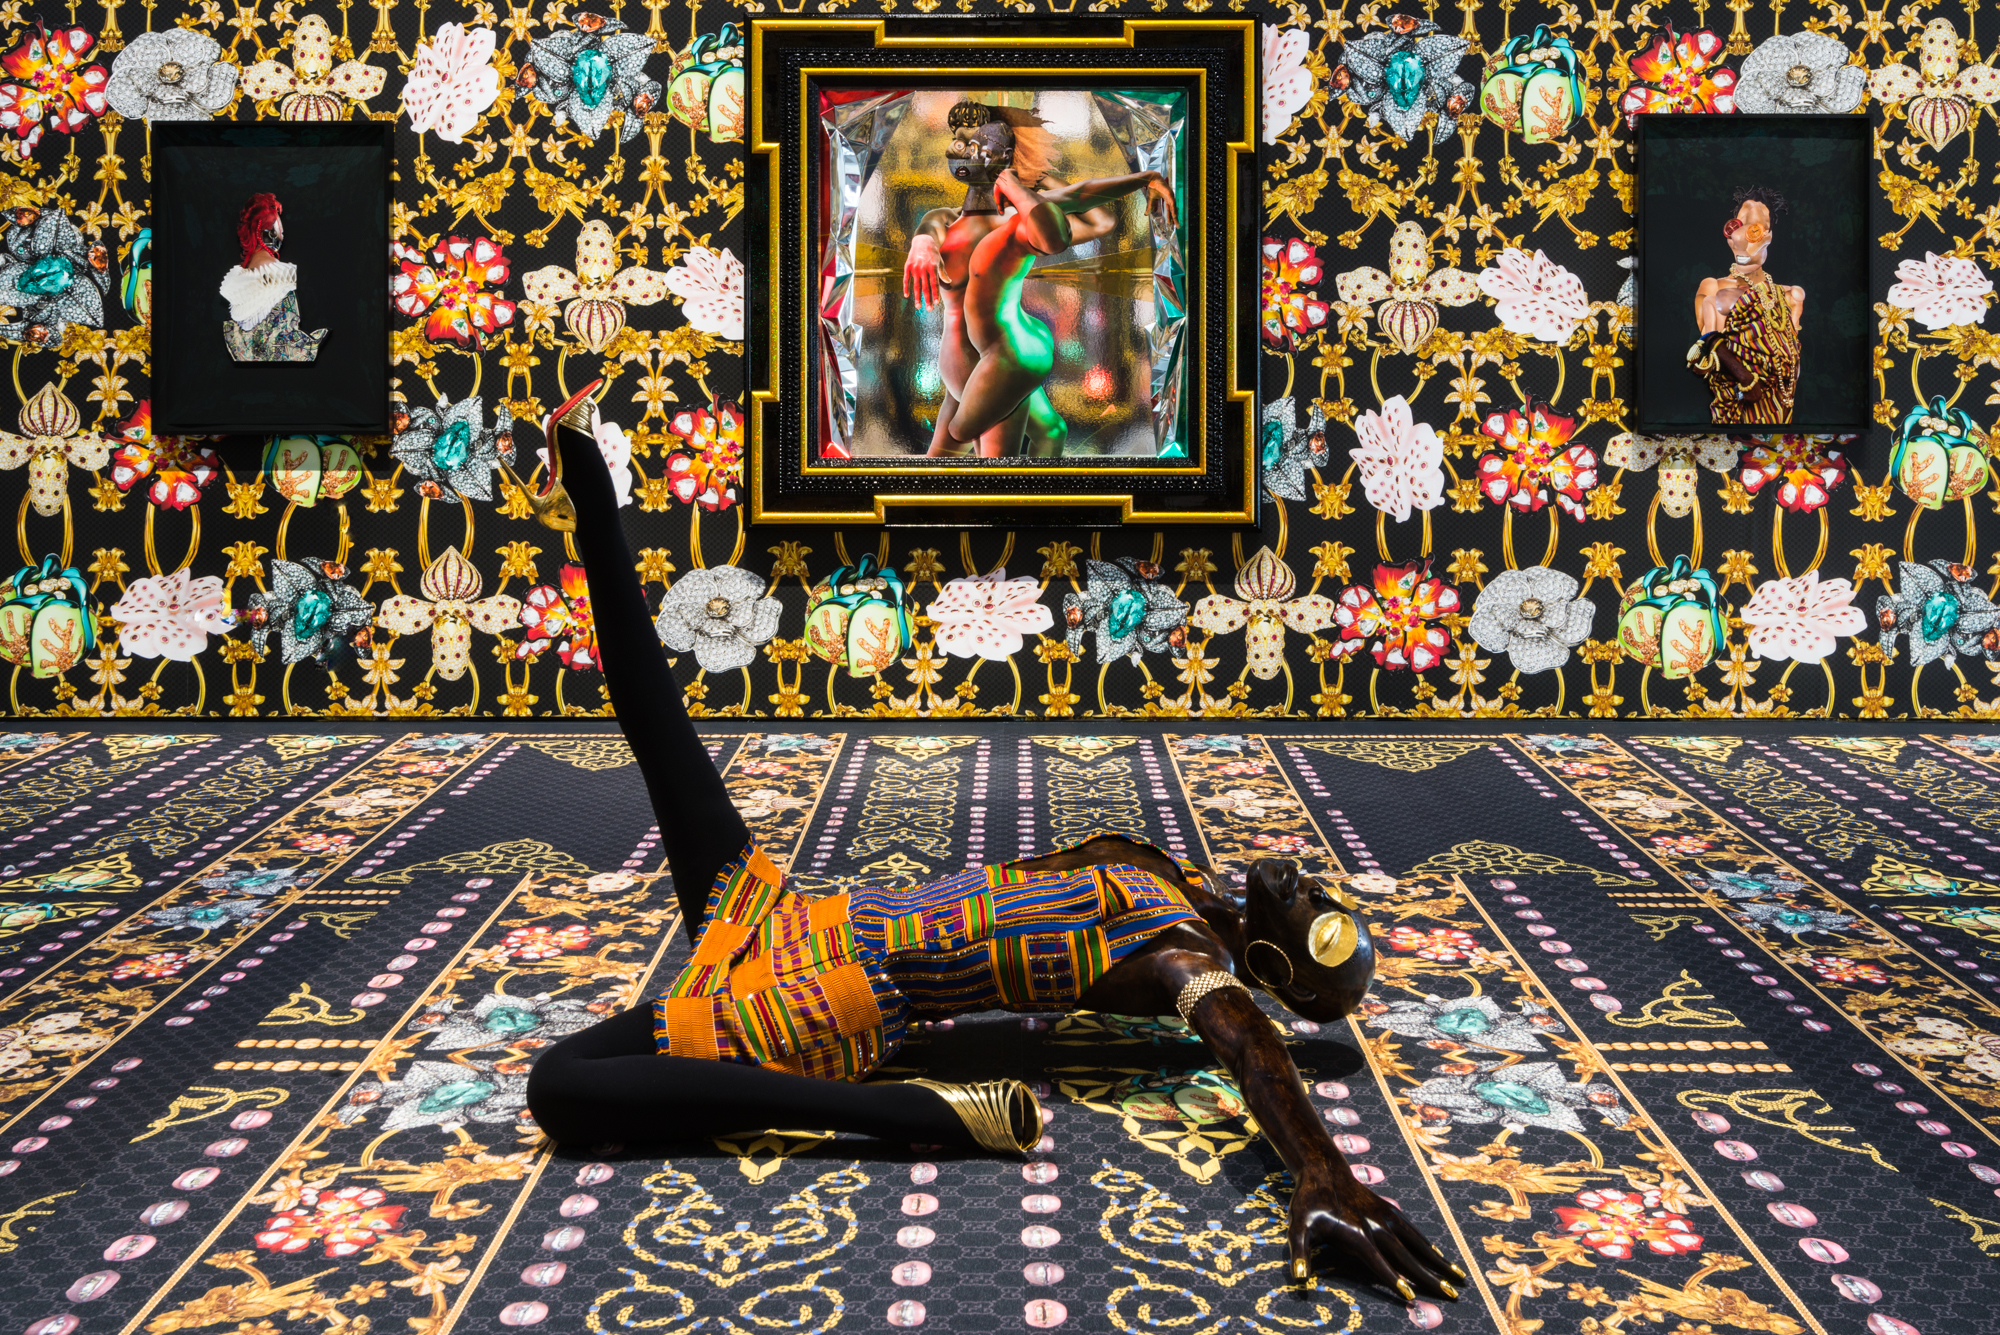 A sculpture of a Black woman lays on the floor, one leg straight up in the air, the other bent back at her side. Her arms are fanned out, head bent back, gold disc eyes closed. In the background, there are three portraits depicting various figures. The floor, walls, and clothing are a cacophony of floral and geometric patterns.